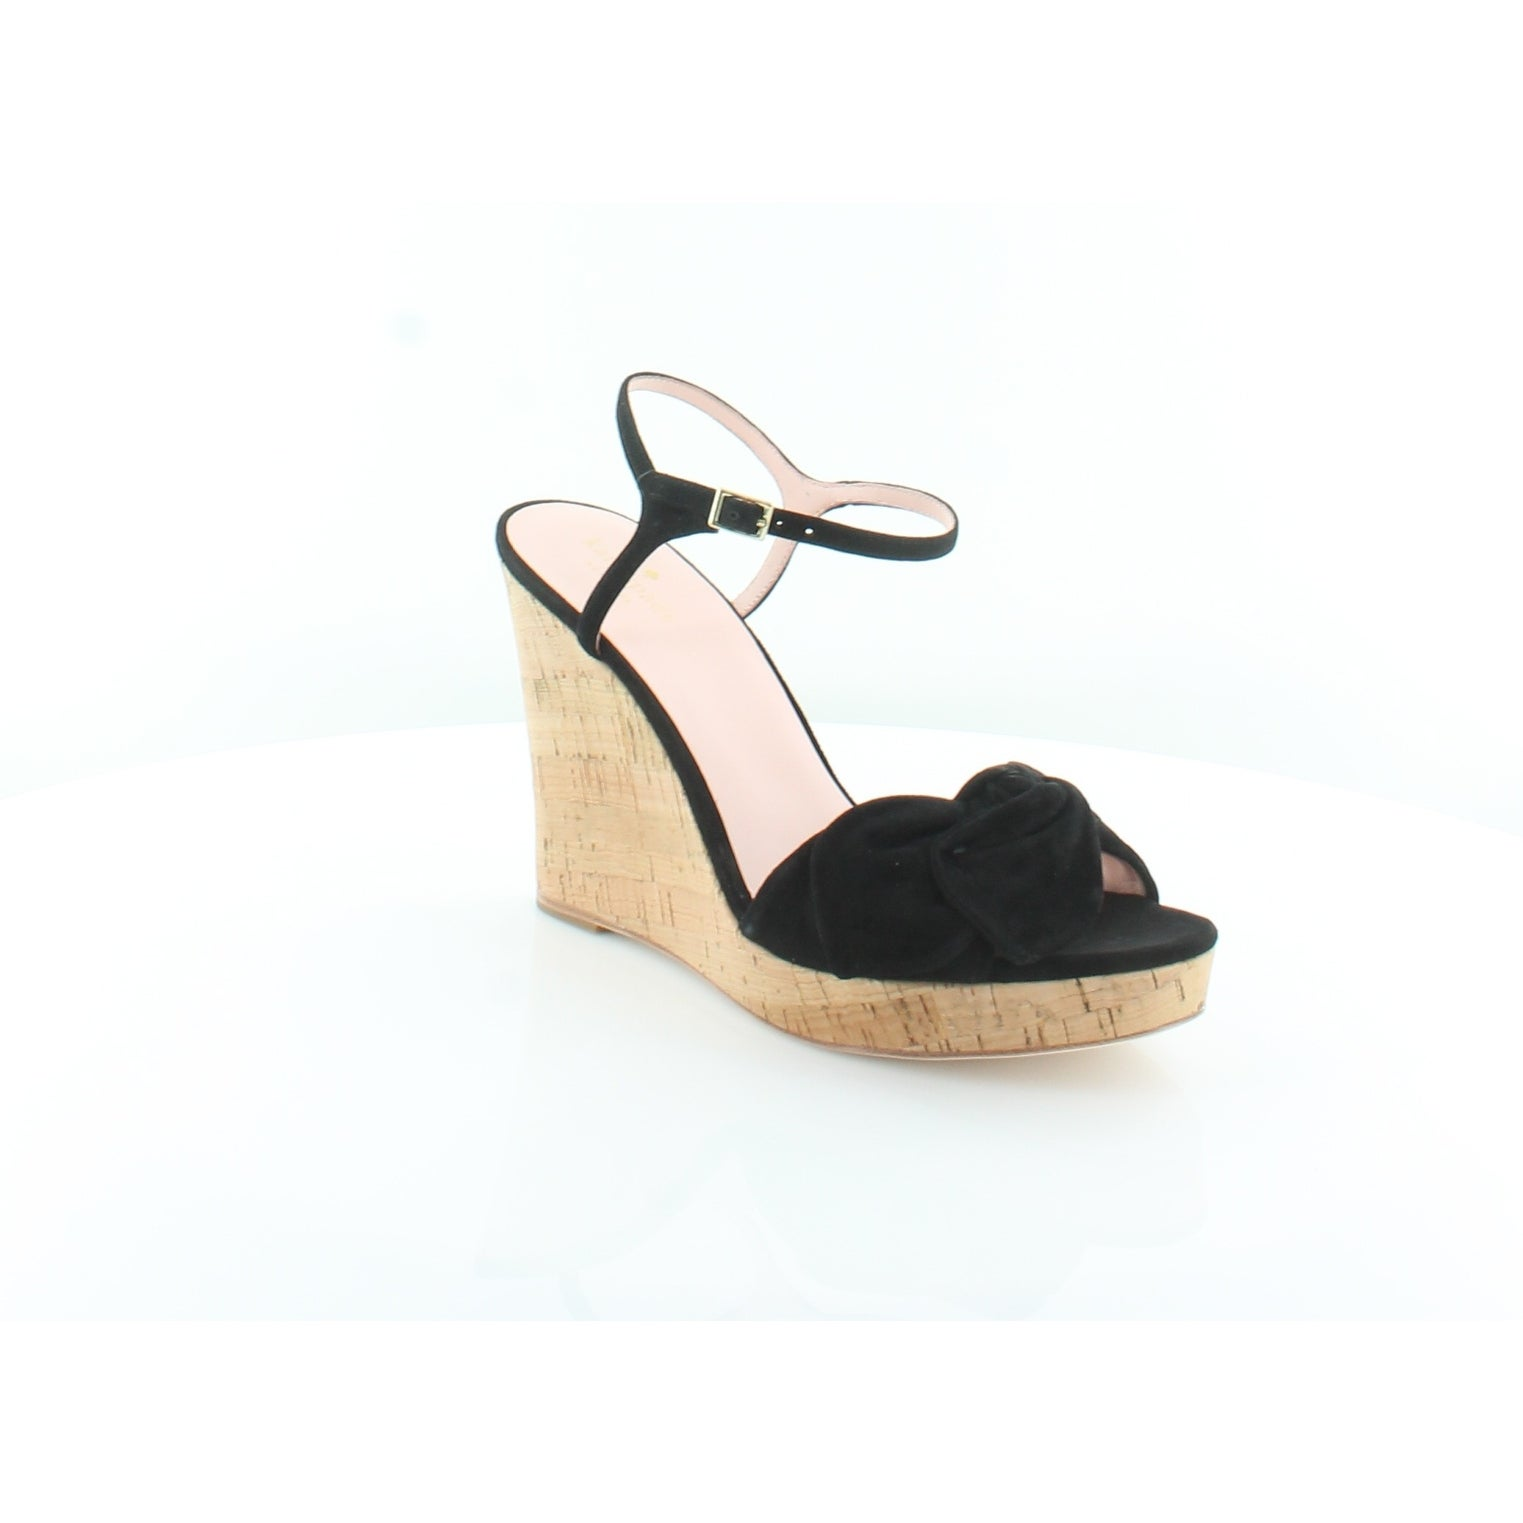 fe961b040e7a Shop Kate Spade Janae Women s Sandals Black - Free Shipping Today -  Overstock - 25616181